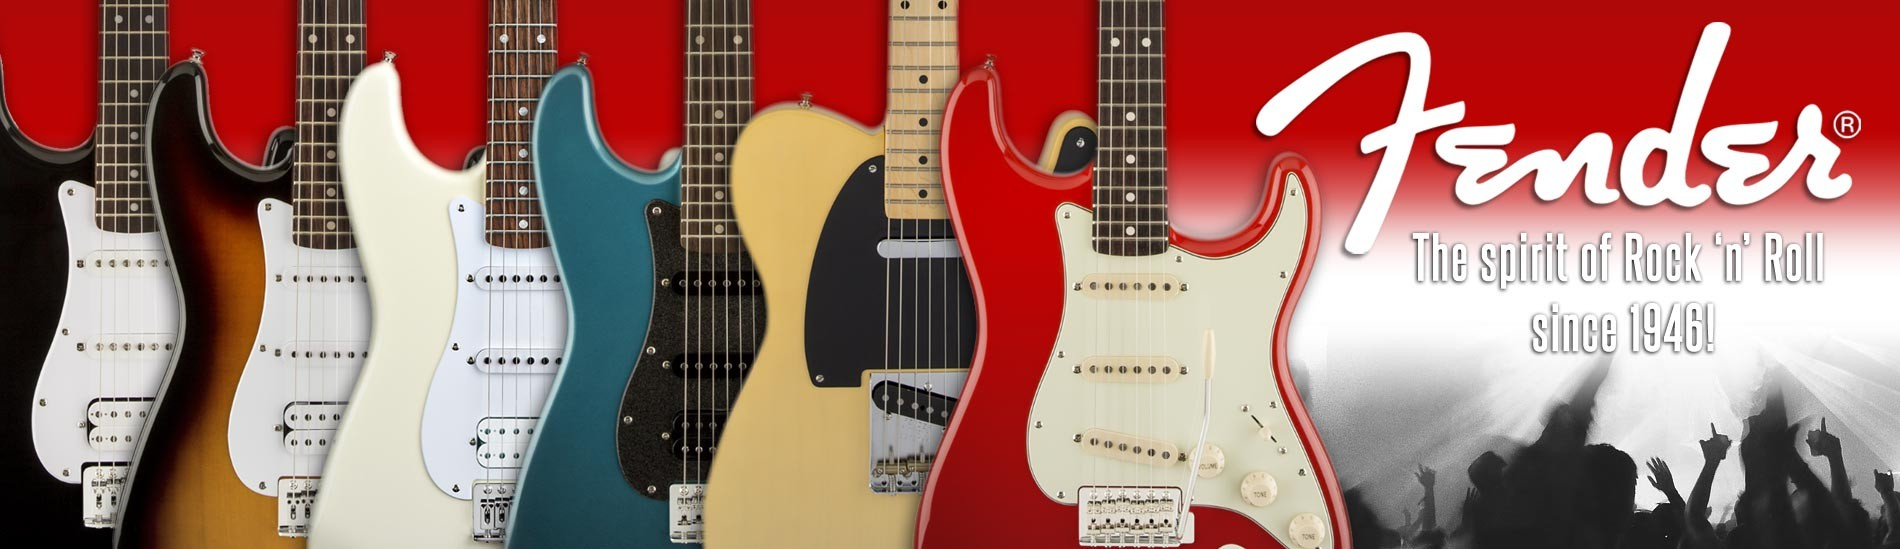 Fender - The spirit of Rock 'n' Roll since 1946!